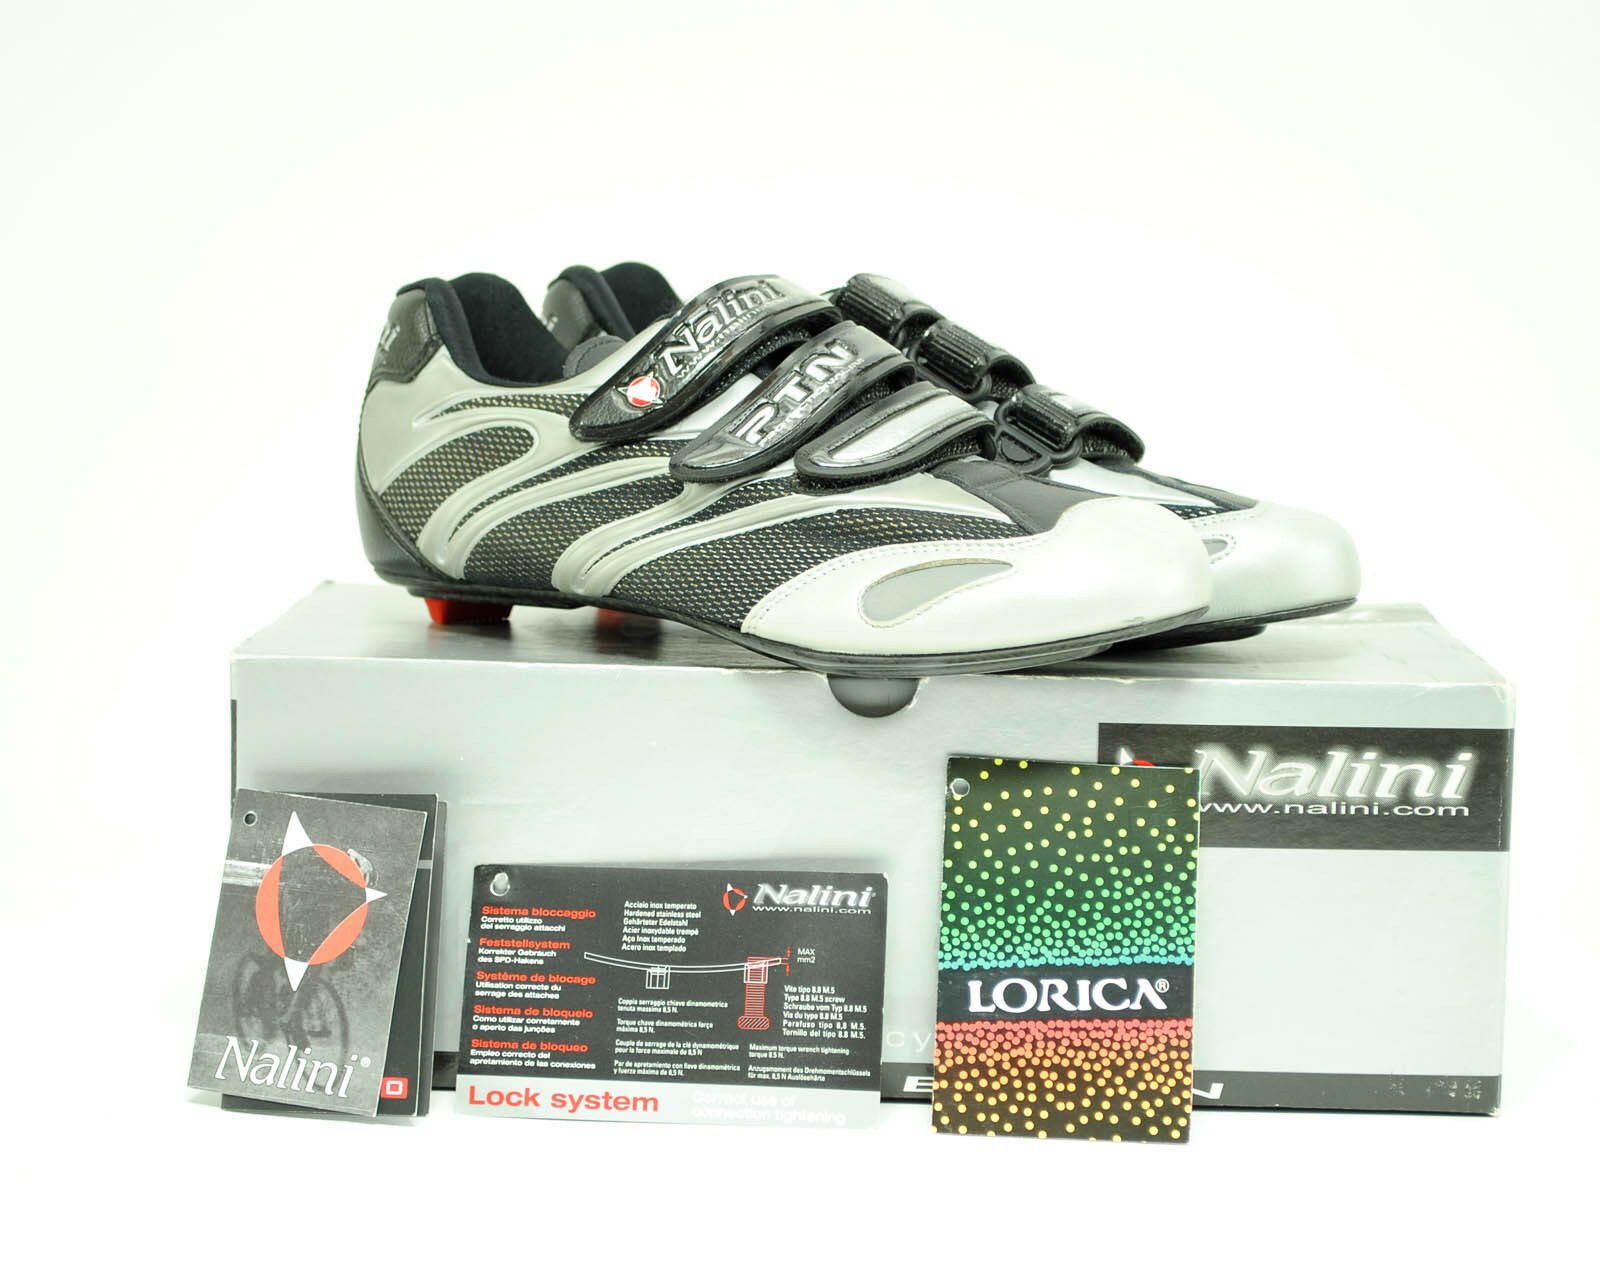 Nalini 270 Grams Carbon Fiber Sole Road Bike  shoes Size 40  sell like hot cakes